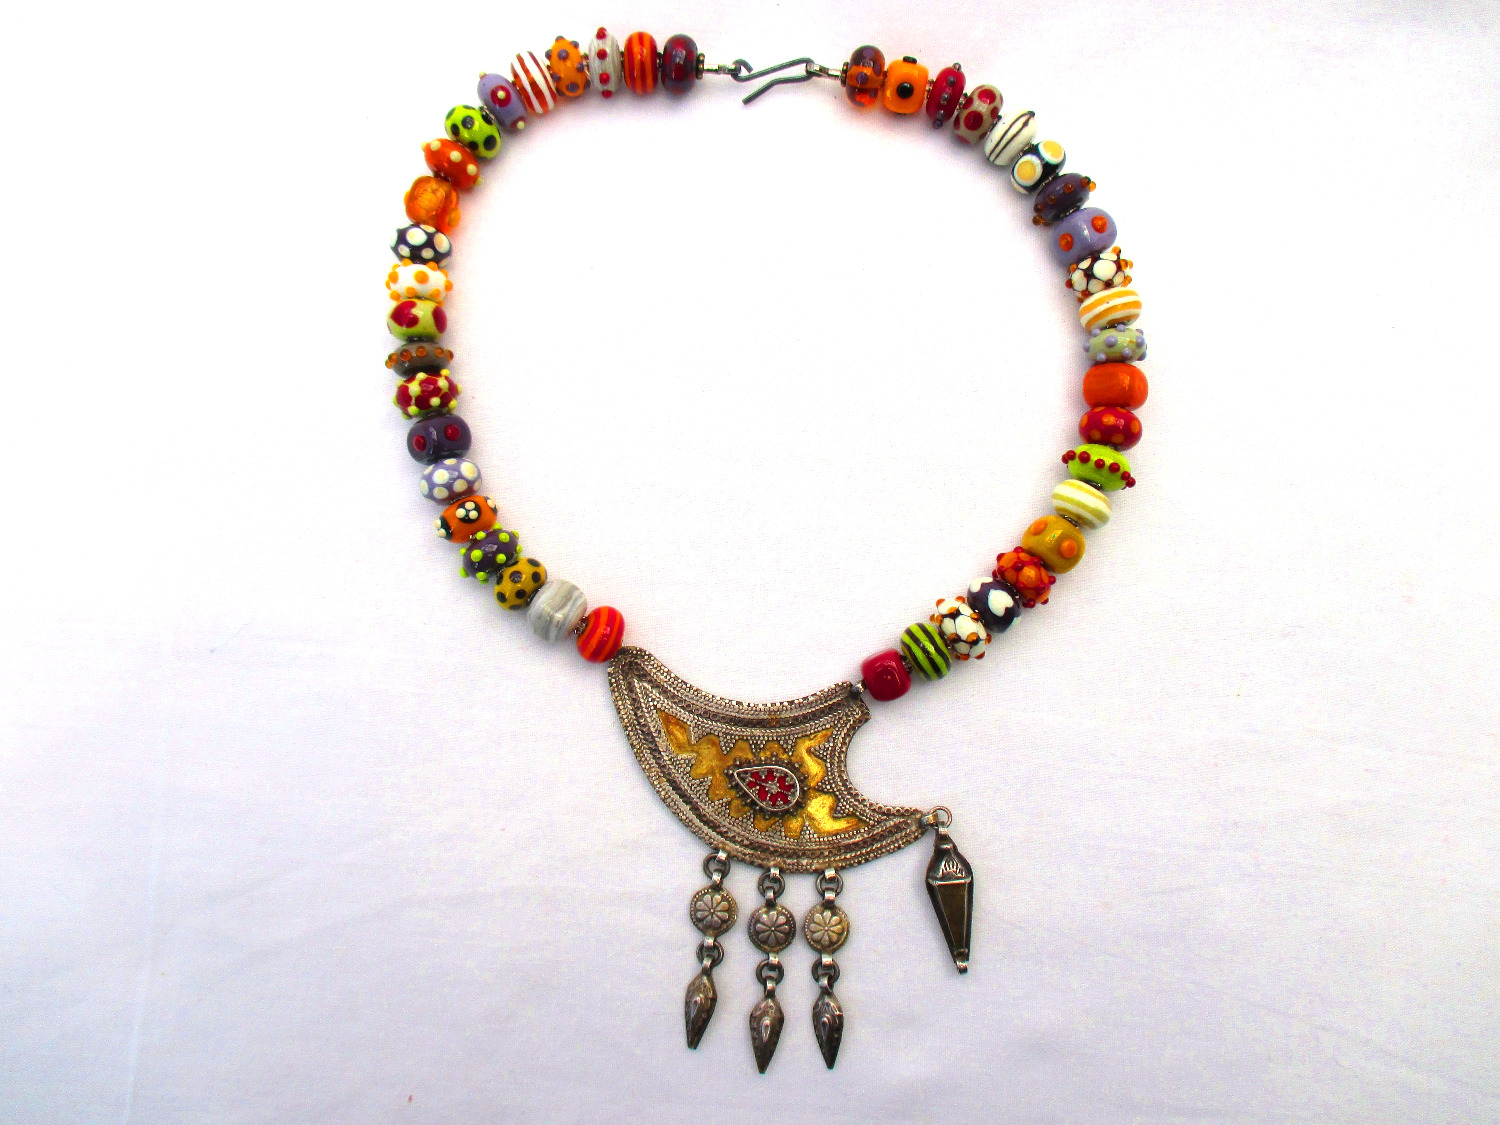 Flameworked beads with found piece